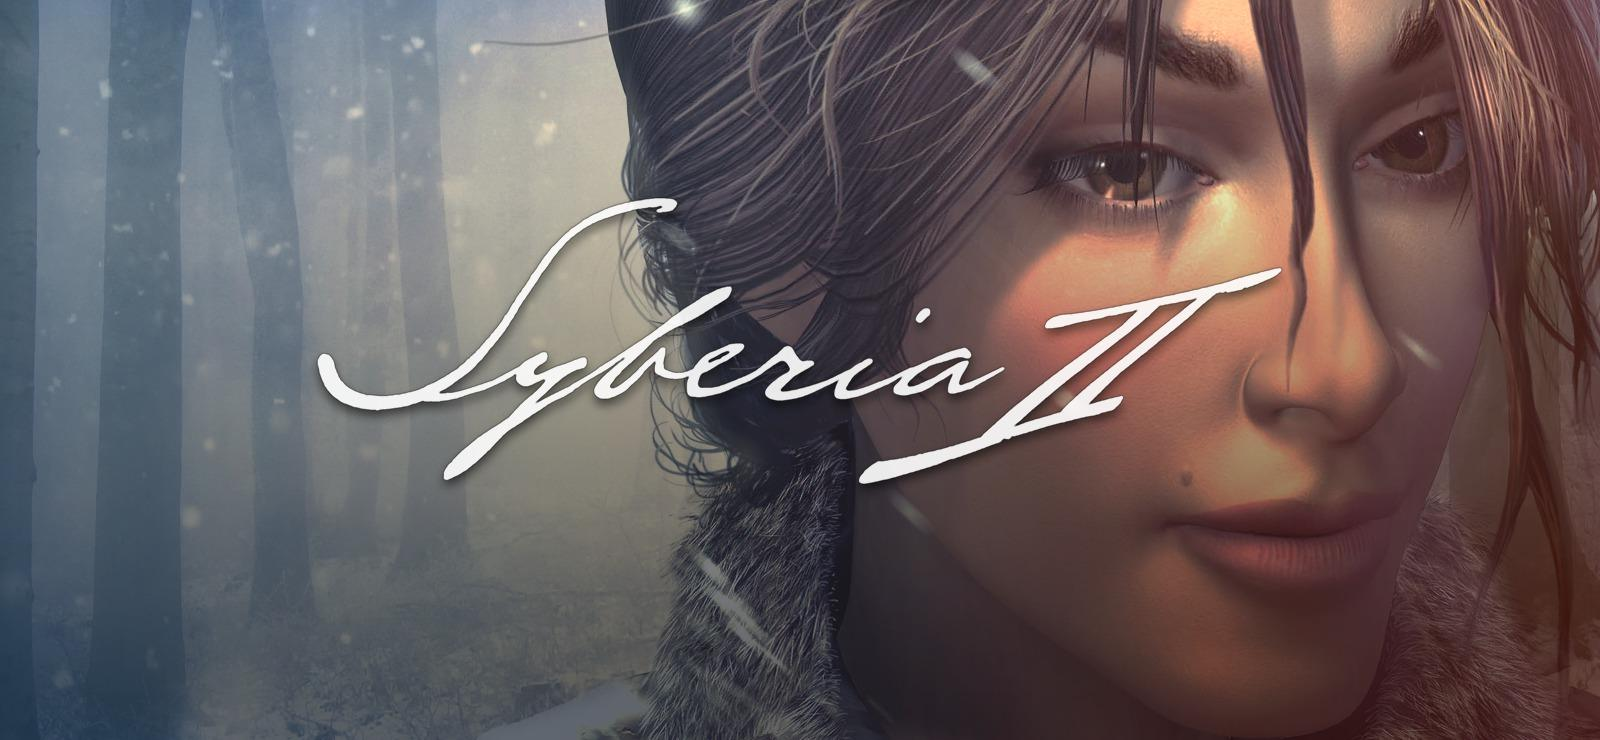 Recensione di: Syberia 2 (PS3) Studio Mirai Libreria di Racconti Fiction Furry